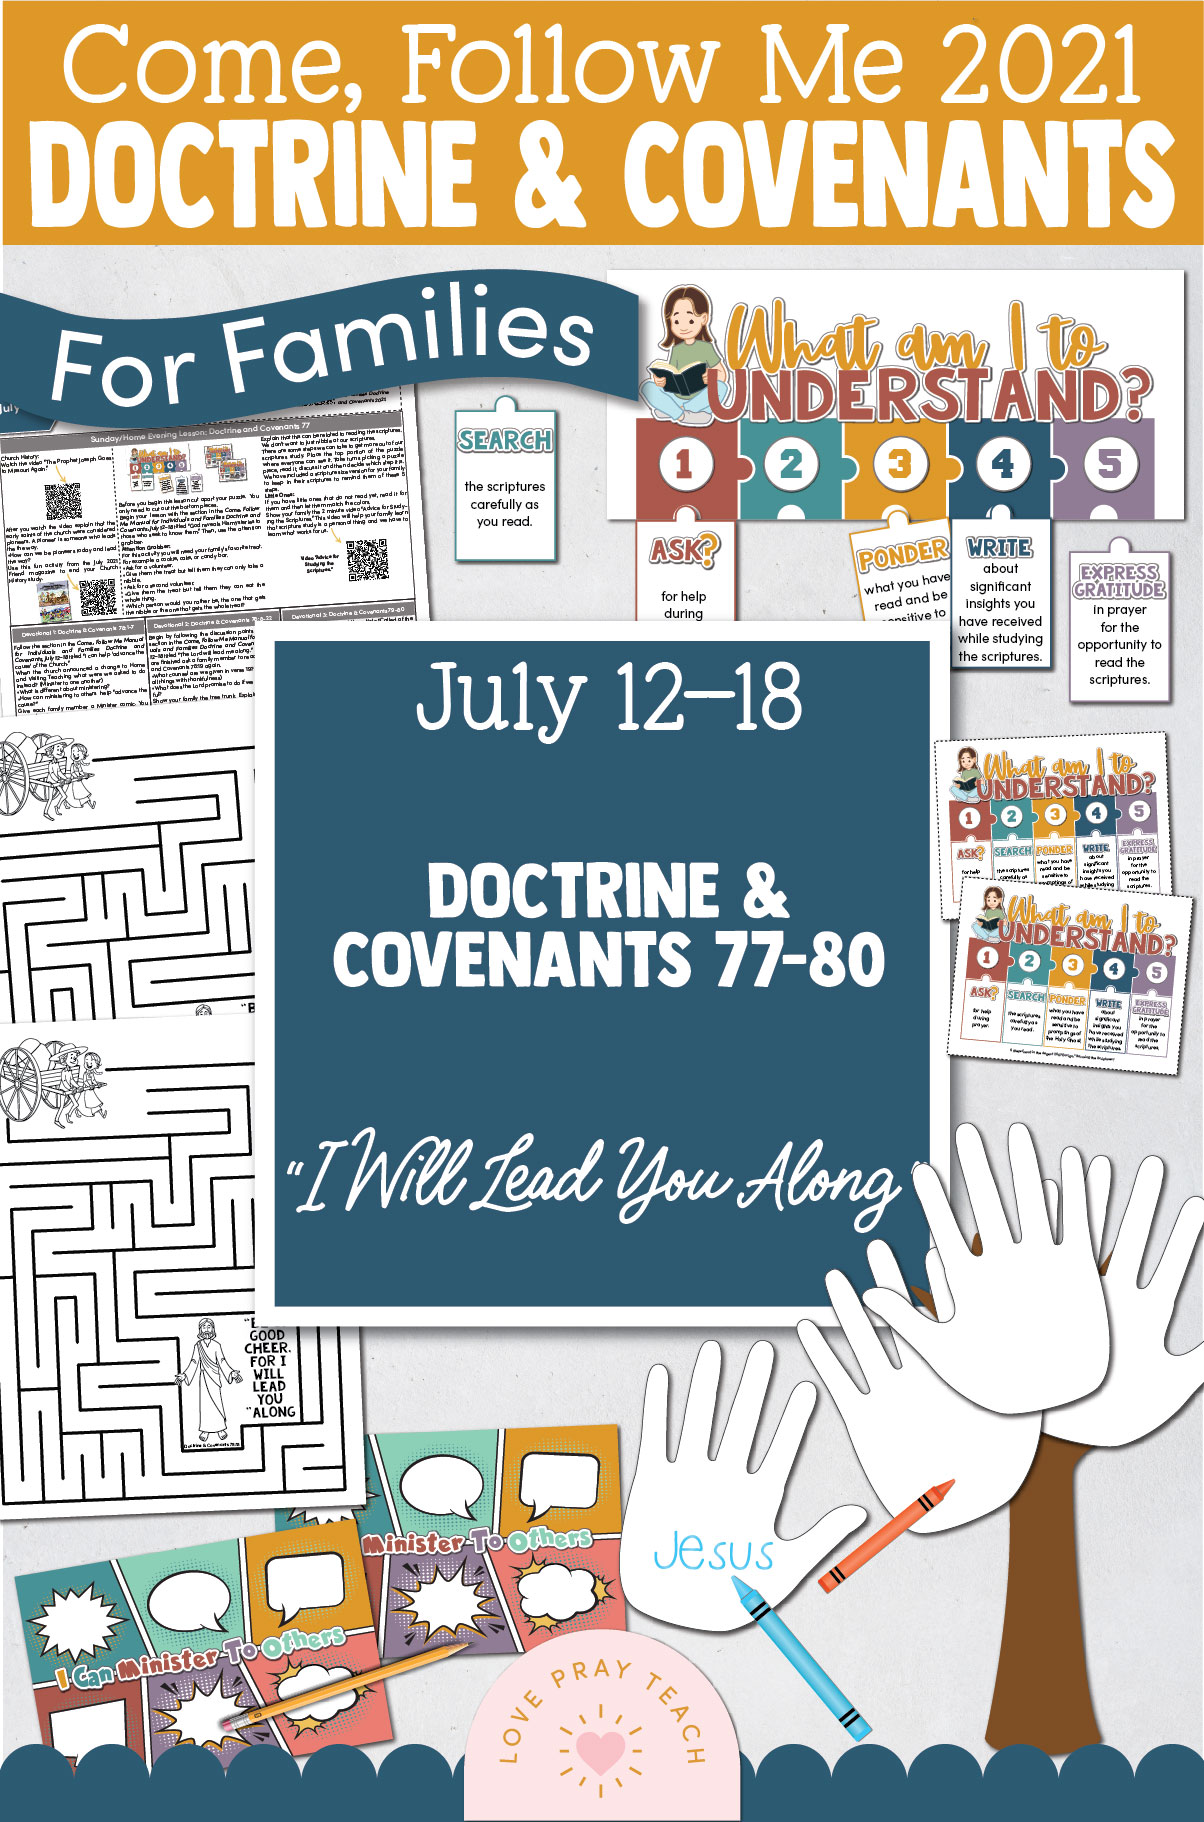 """Come, Follow Me—For Individuals and Families: Doctrine And Covenants 2021, July Week 3 Doctrine and Covenants 77-80: July 12-18, """"I Will Lead You Along"""""""